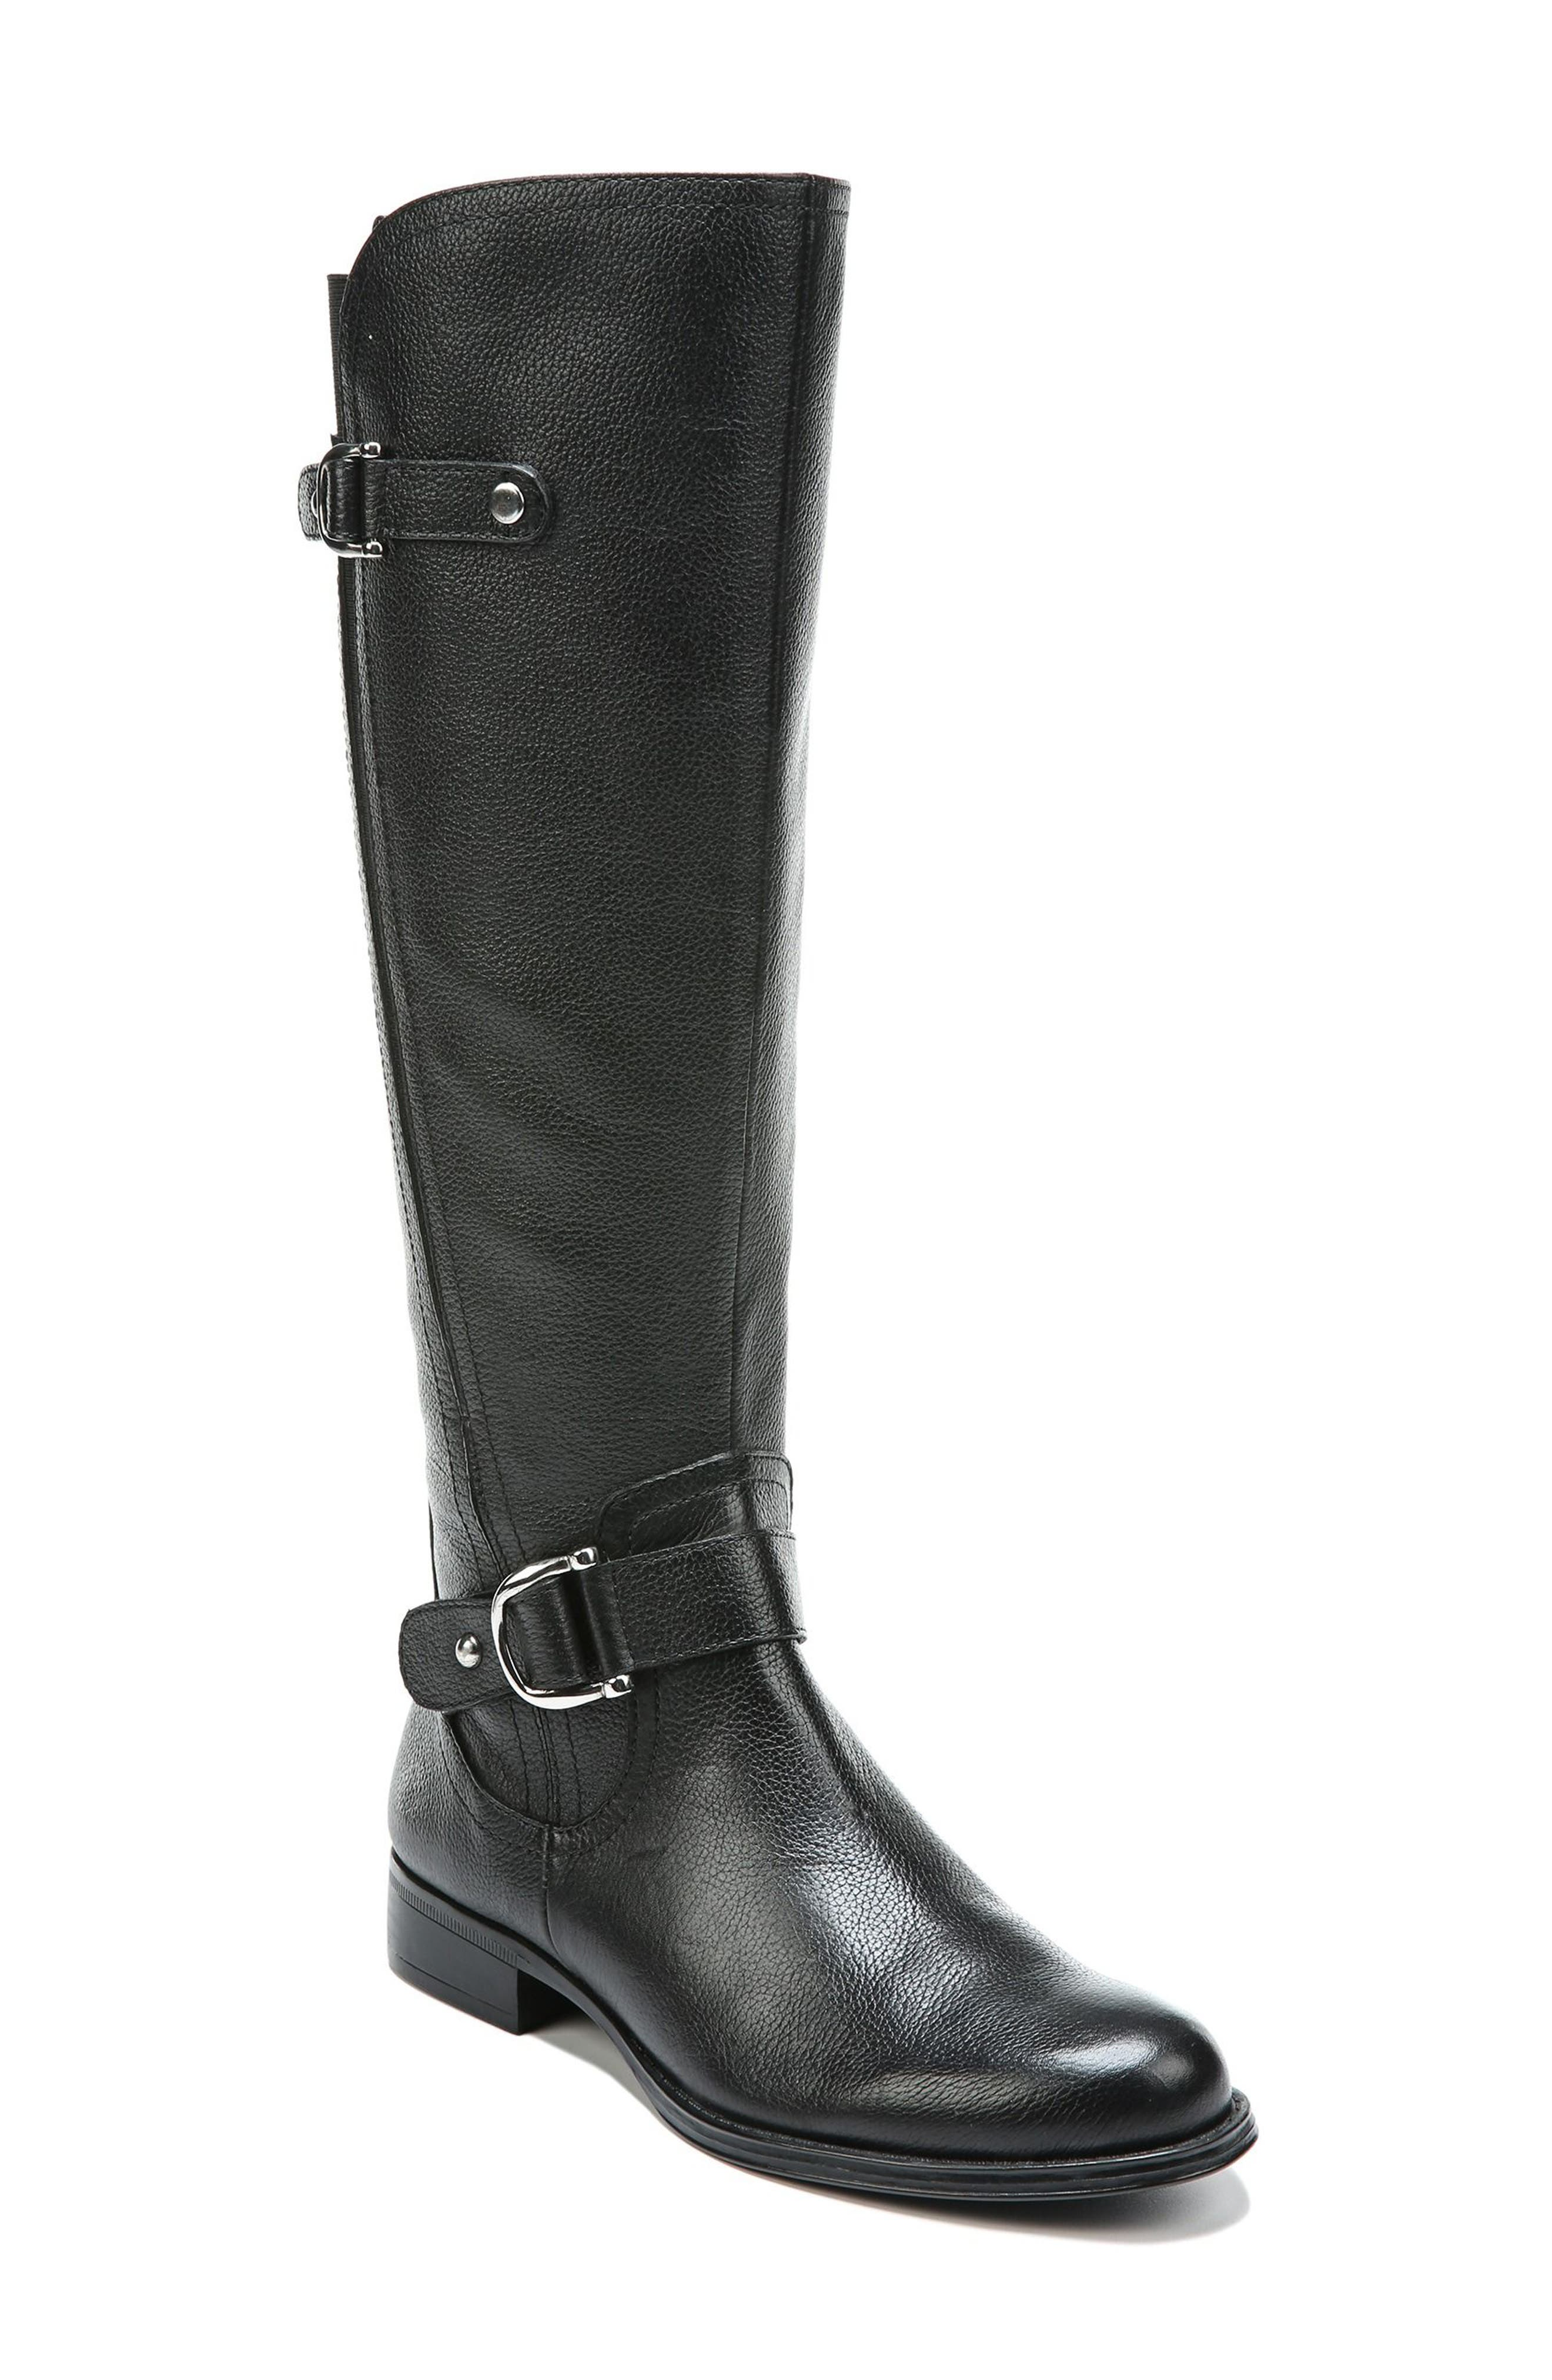 Naturalizer Jenelle Tall Boot Regular Calf WW - Black